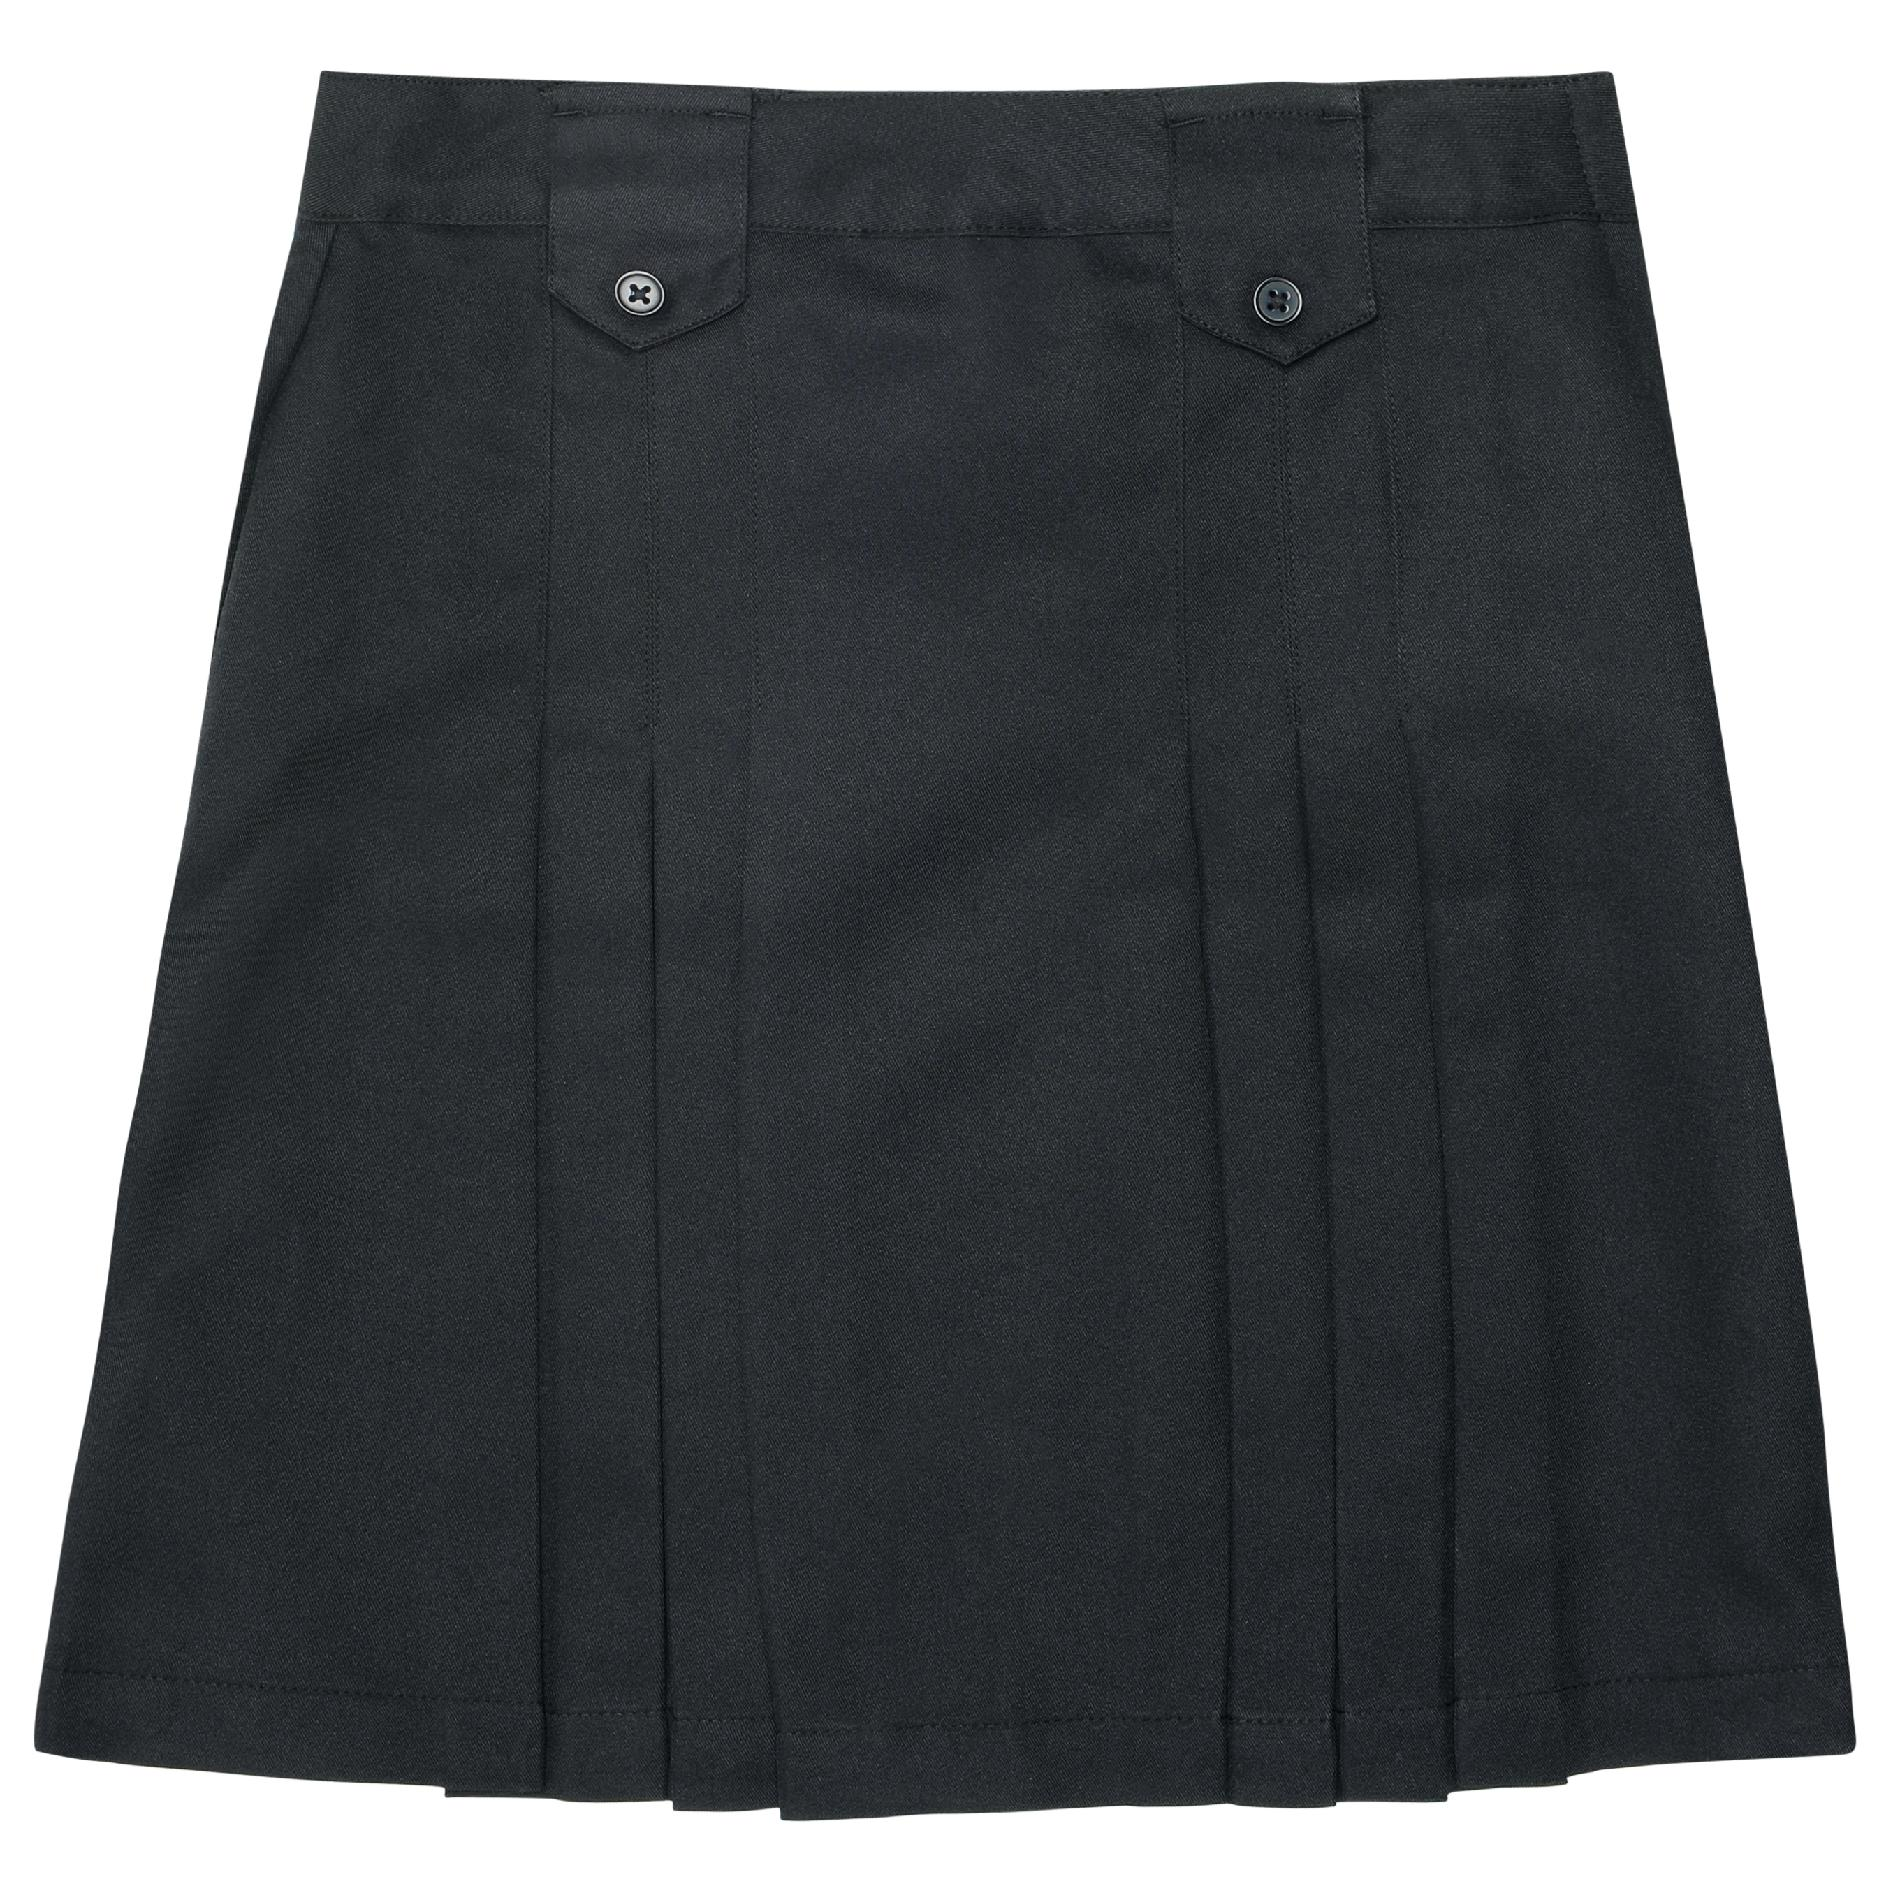 School Skirts Kmart School Uniform Skirts Find Girls School Uniform Skirts At